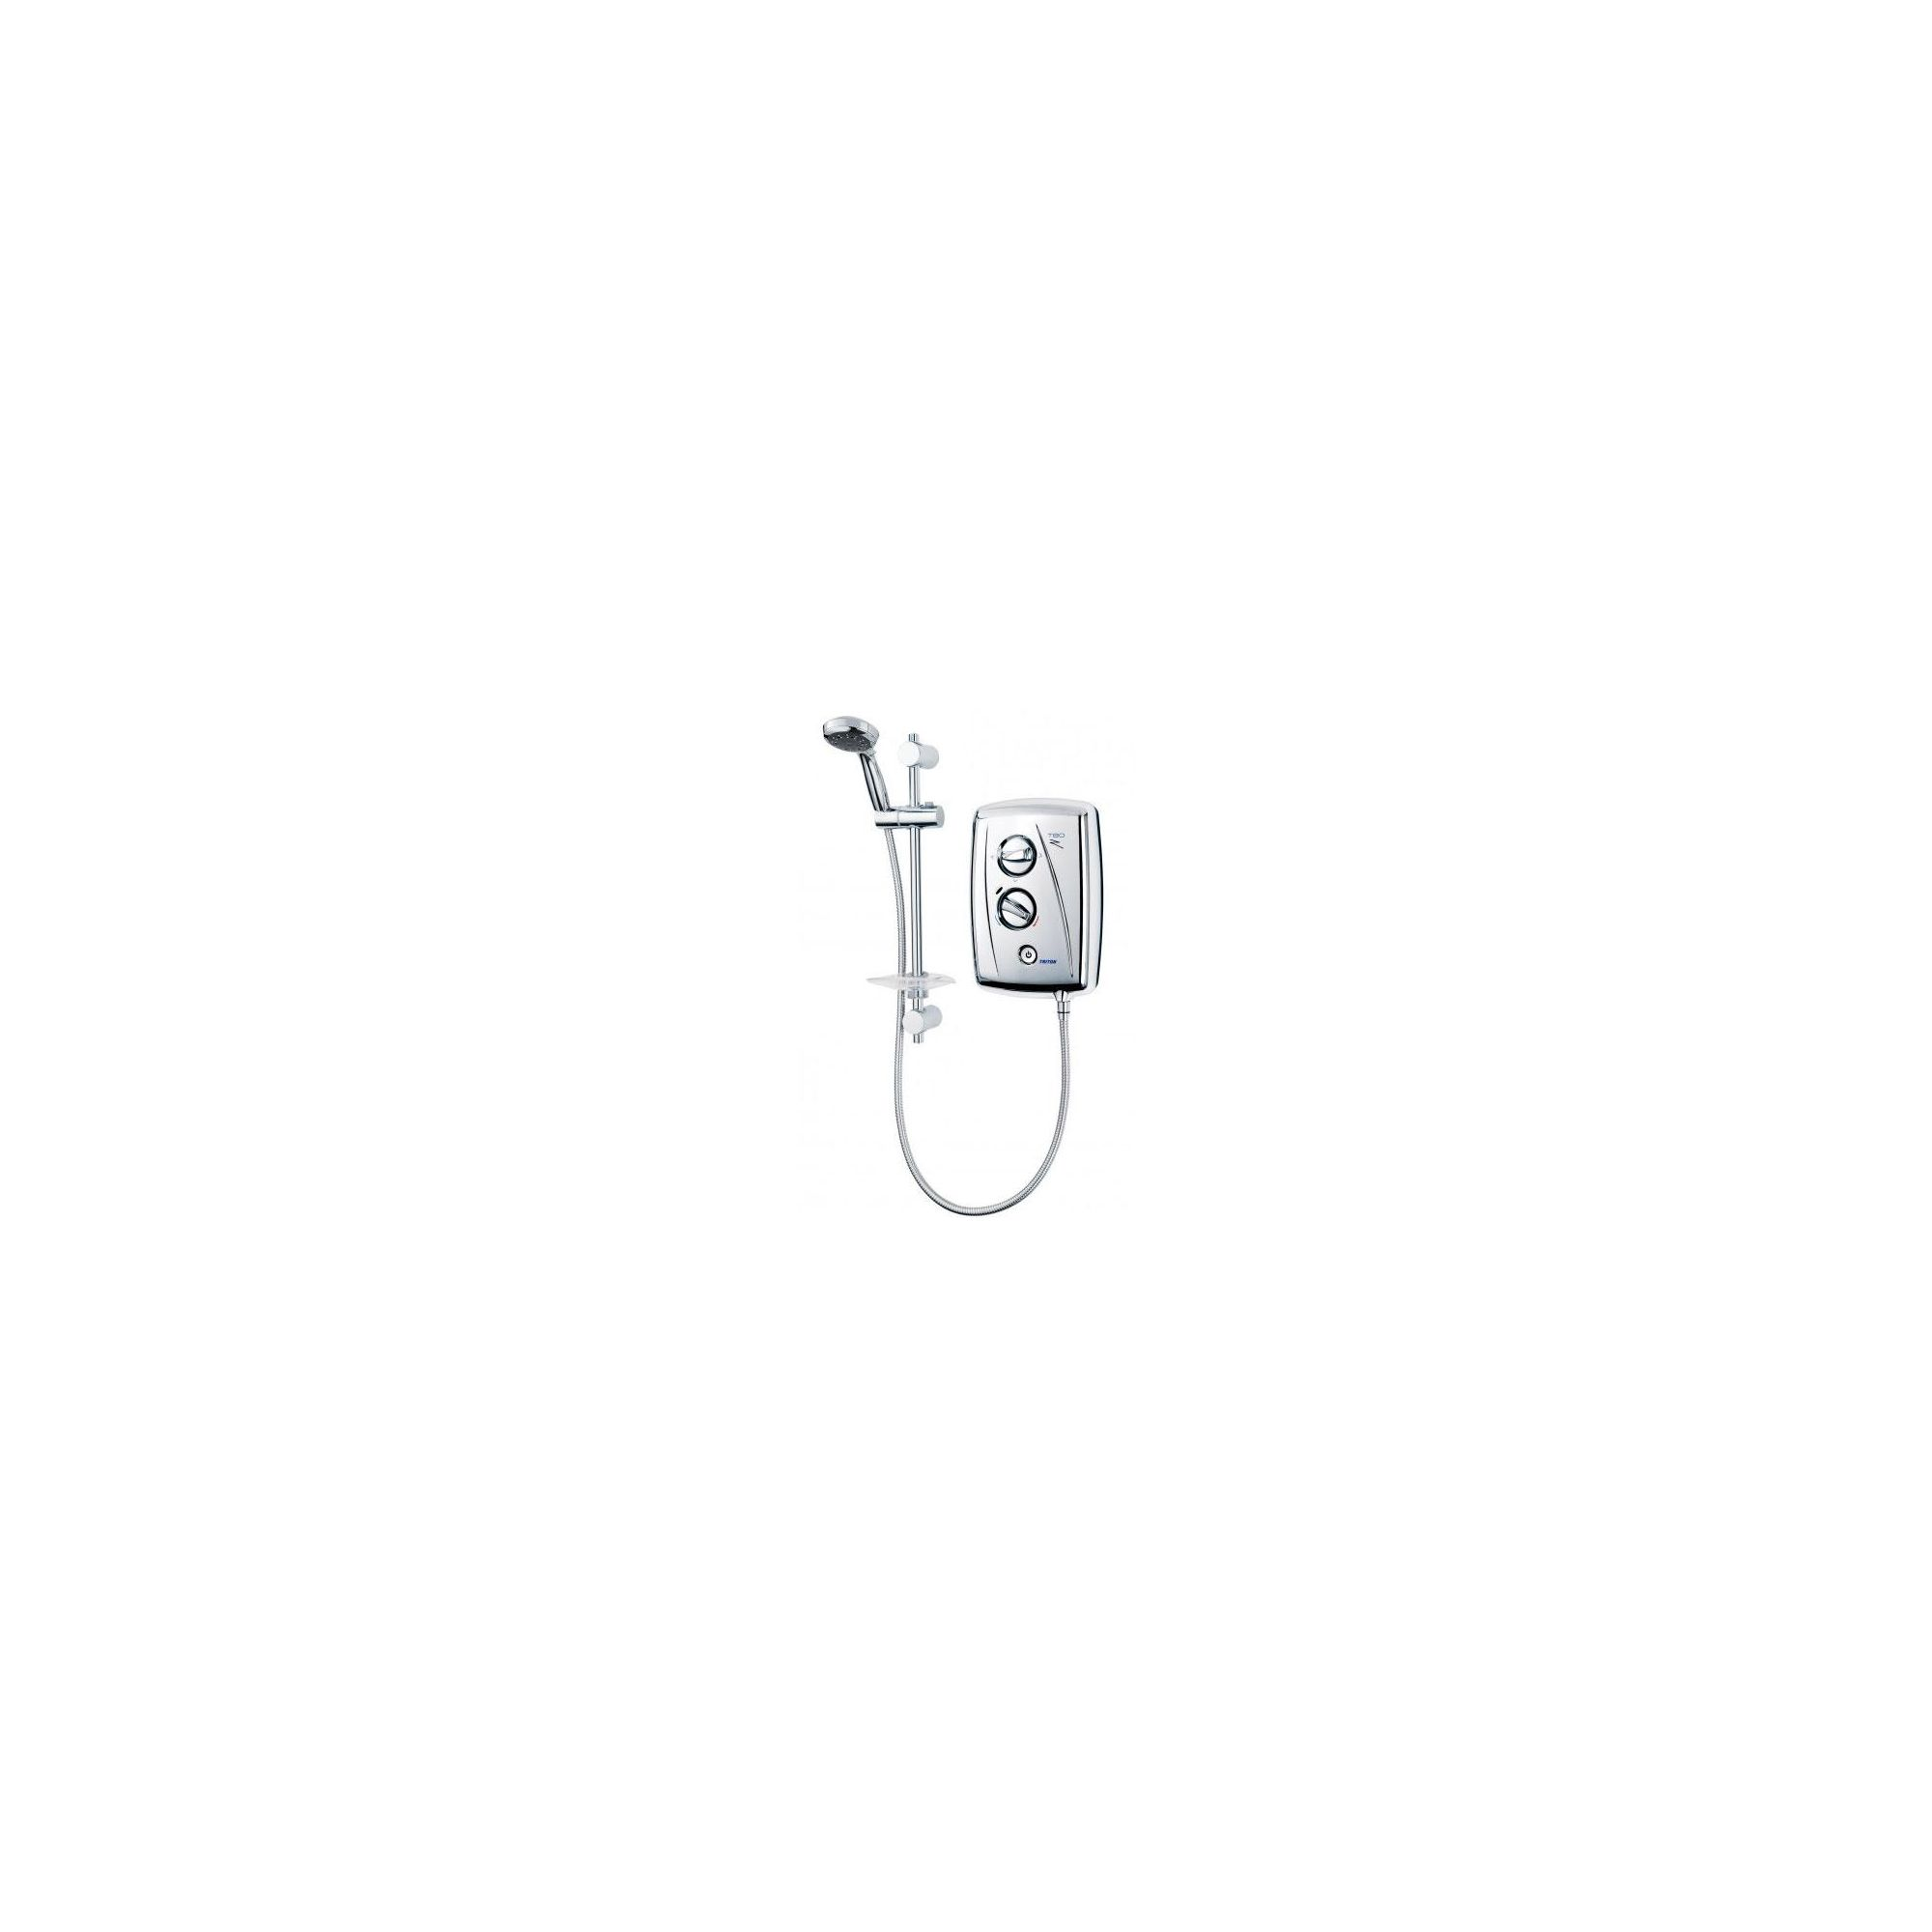 Triton T80Z Fast-Fit Electric Shower Chrome 9.5 kW at Tesco Direct